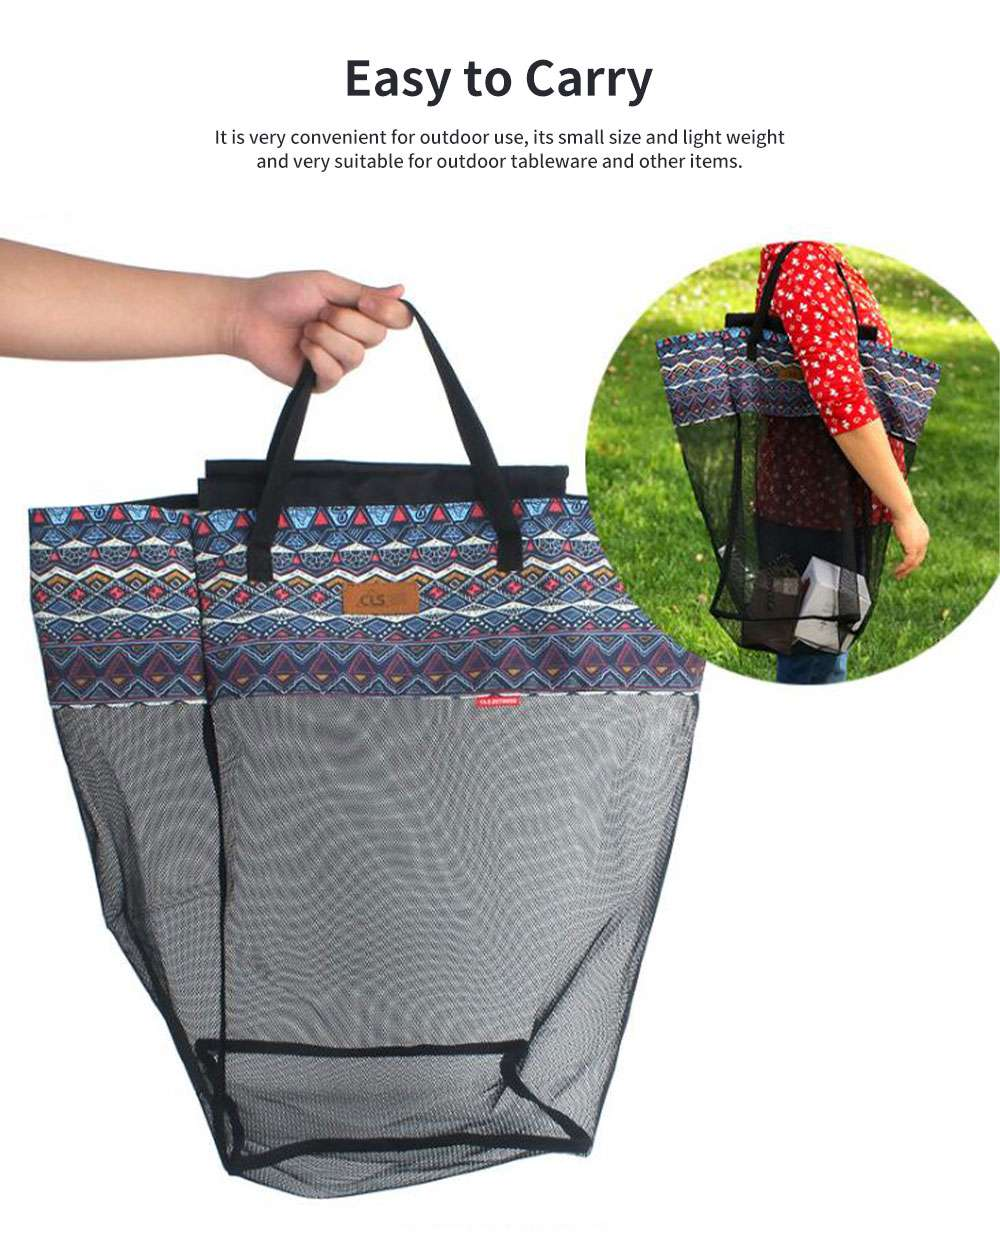 New Outdoor Receiving Basket, Multifunctional Receiving Barrel Dirty Clothes Baskets, Laundry Baskets Storage Bags Camping Garbage Hanging Rack 1